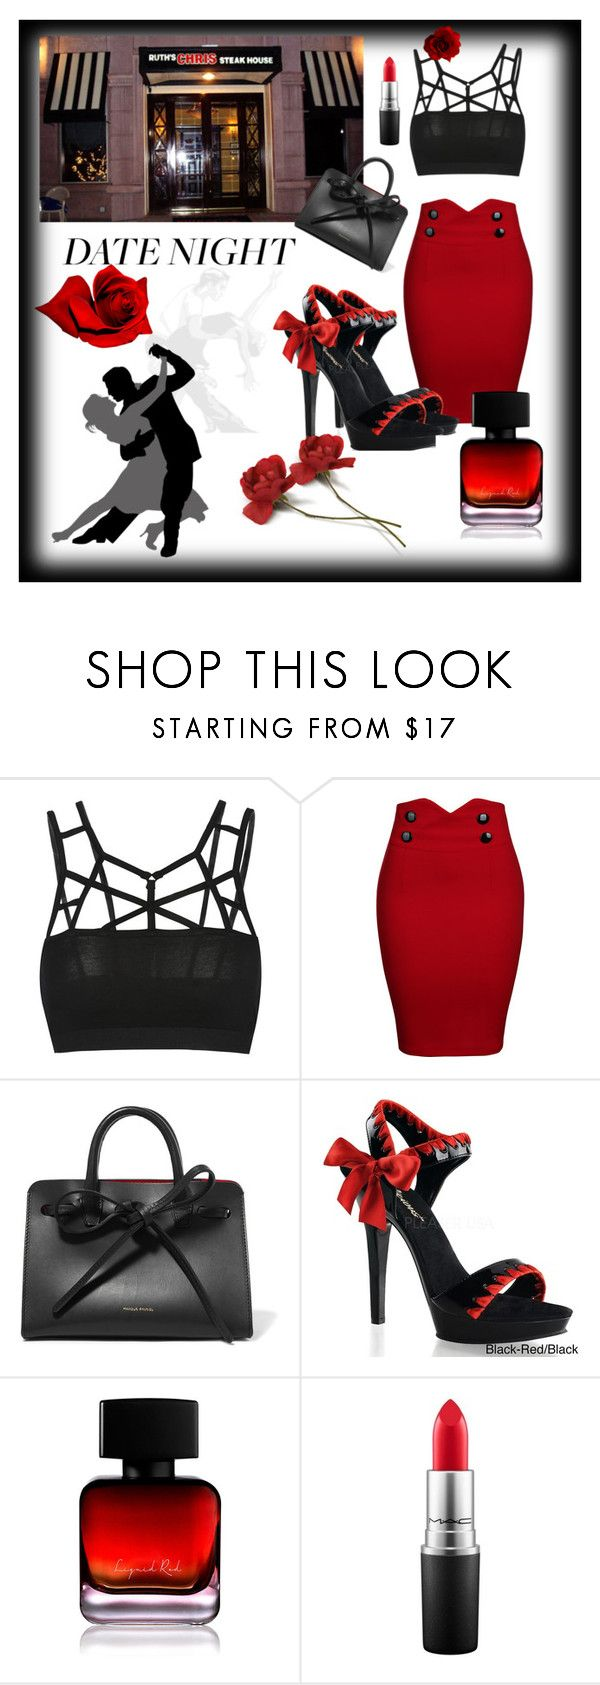 """""""Dinner and Dancing"""" by afinediime ❤ liked on Polyvore featuring Raton, WithChic, Mansur Gavriel, Salsa, Pleaser, The Collection by Phuong Dang, MAC Cosmetics, DateNight and summerdate"""